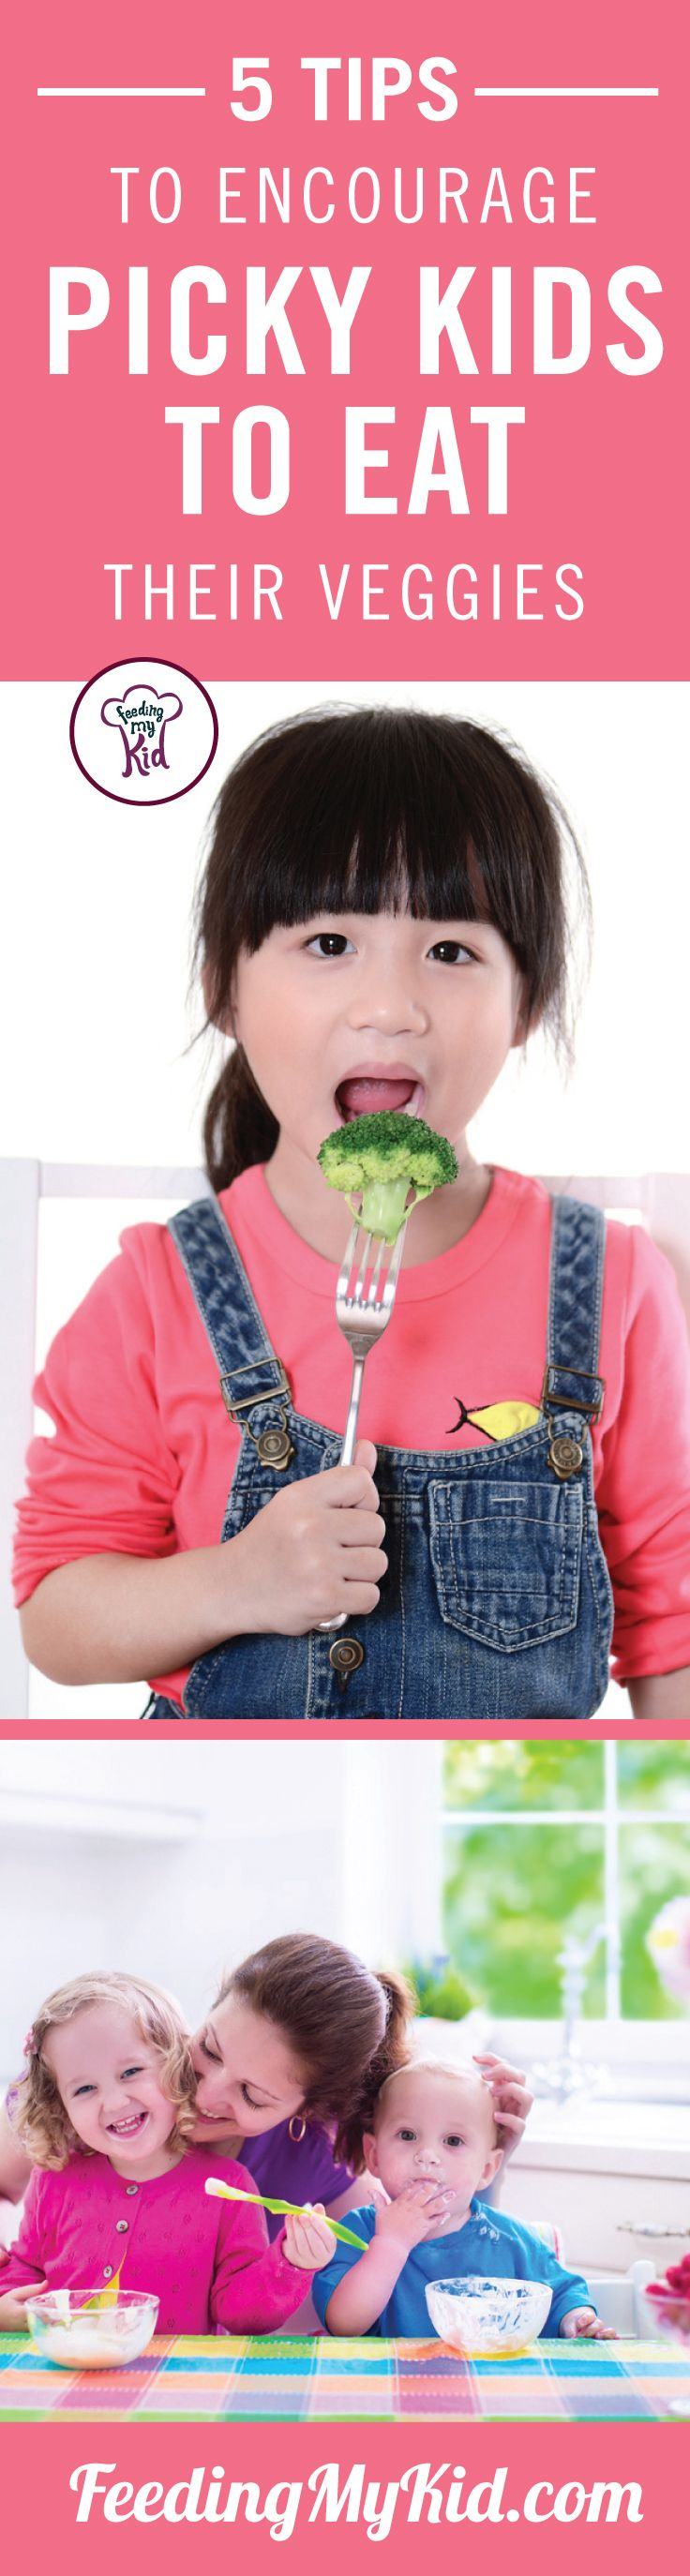 As a leading child-feeding expert in Canada, I've helped thousands of families get their picky eaters to try new foods on their own without being sneaky or forceful. Let me help you! Check out this great article to help your picky eater. Feeding My Kid is a filled with all the information you need about how to raise your kids, from healthy tips to nutritious recipes.#FeedingMyKid #vegetables #pickyeating